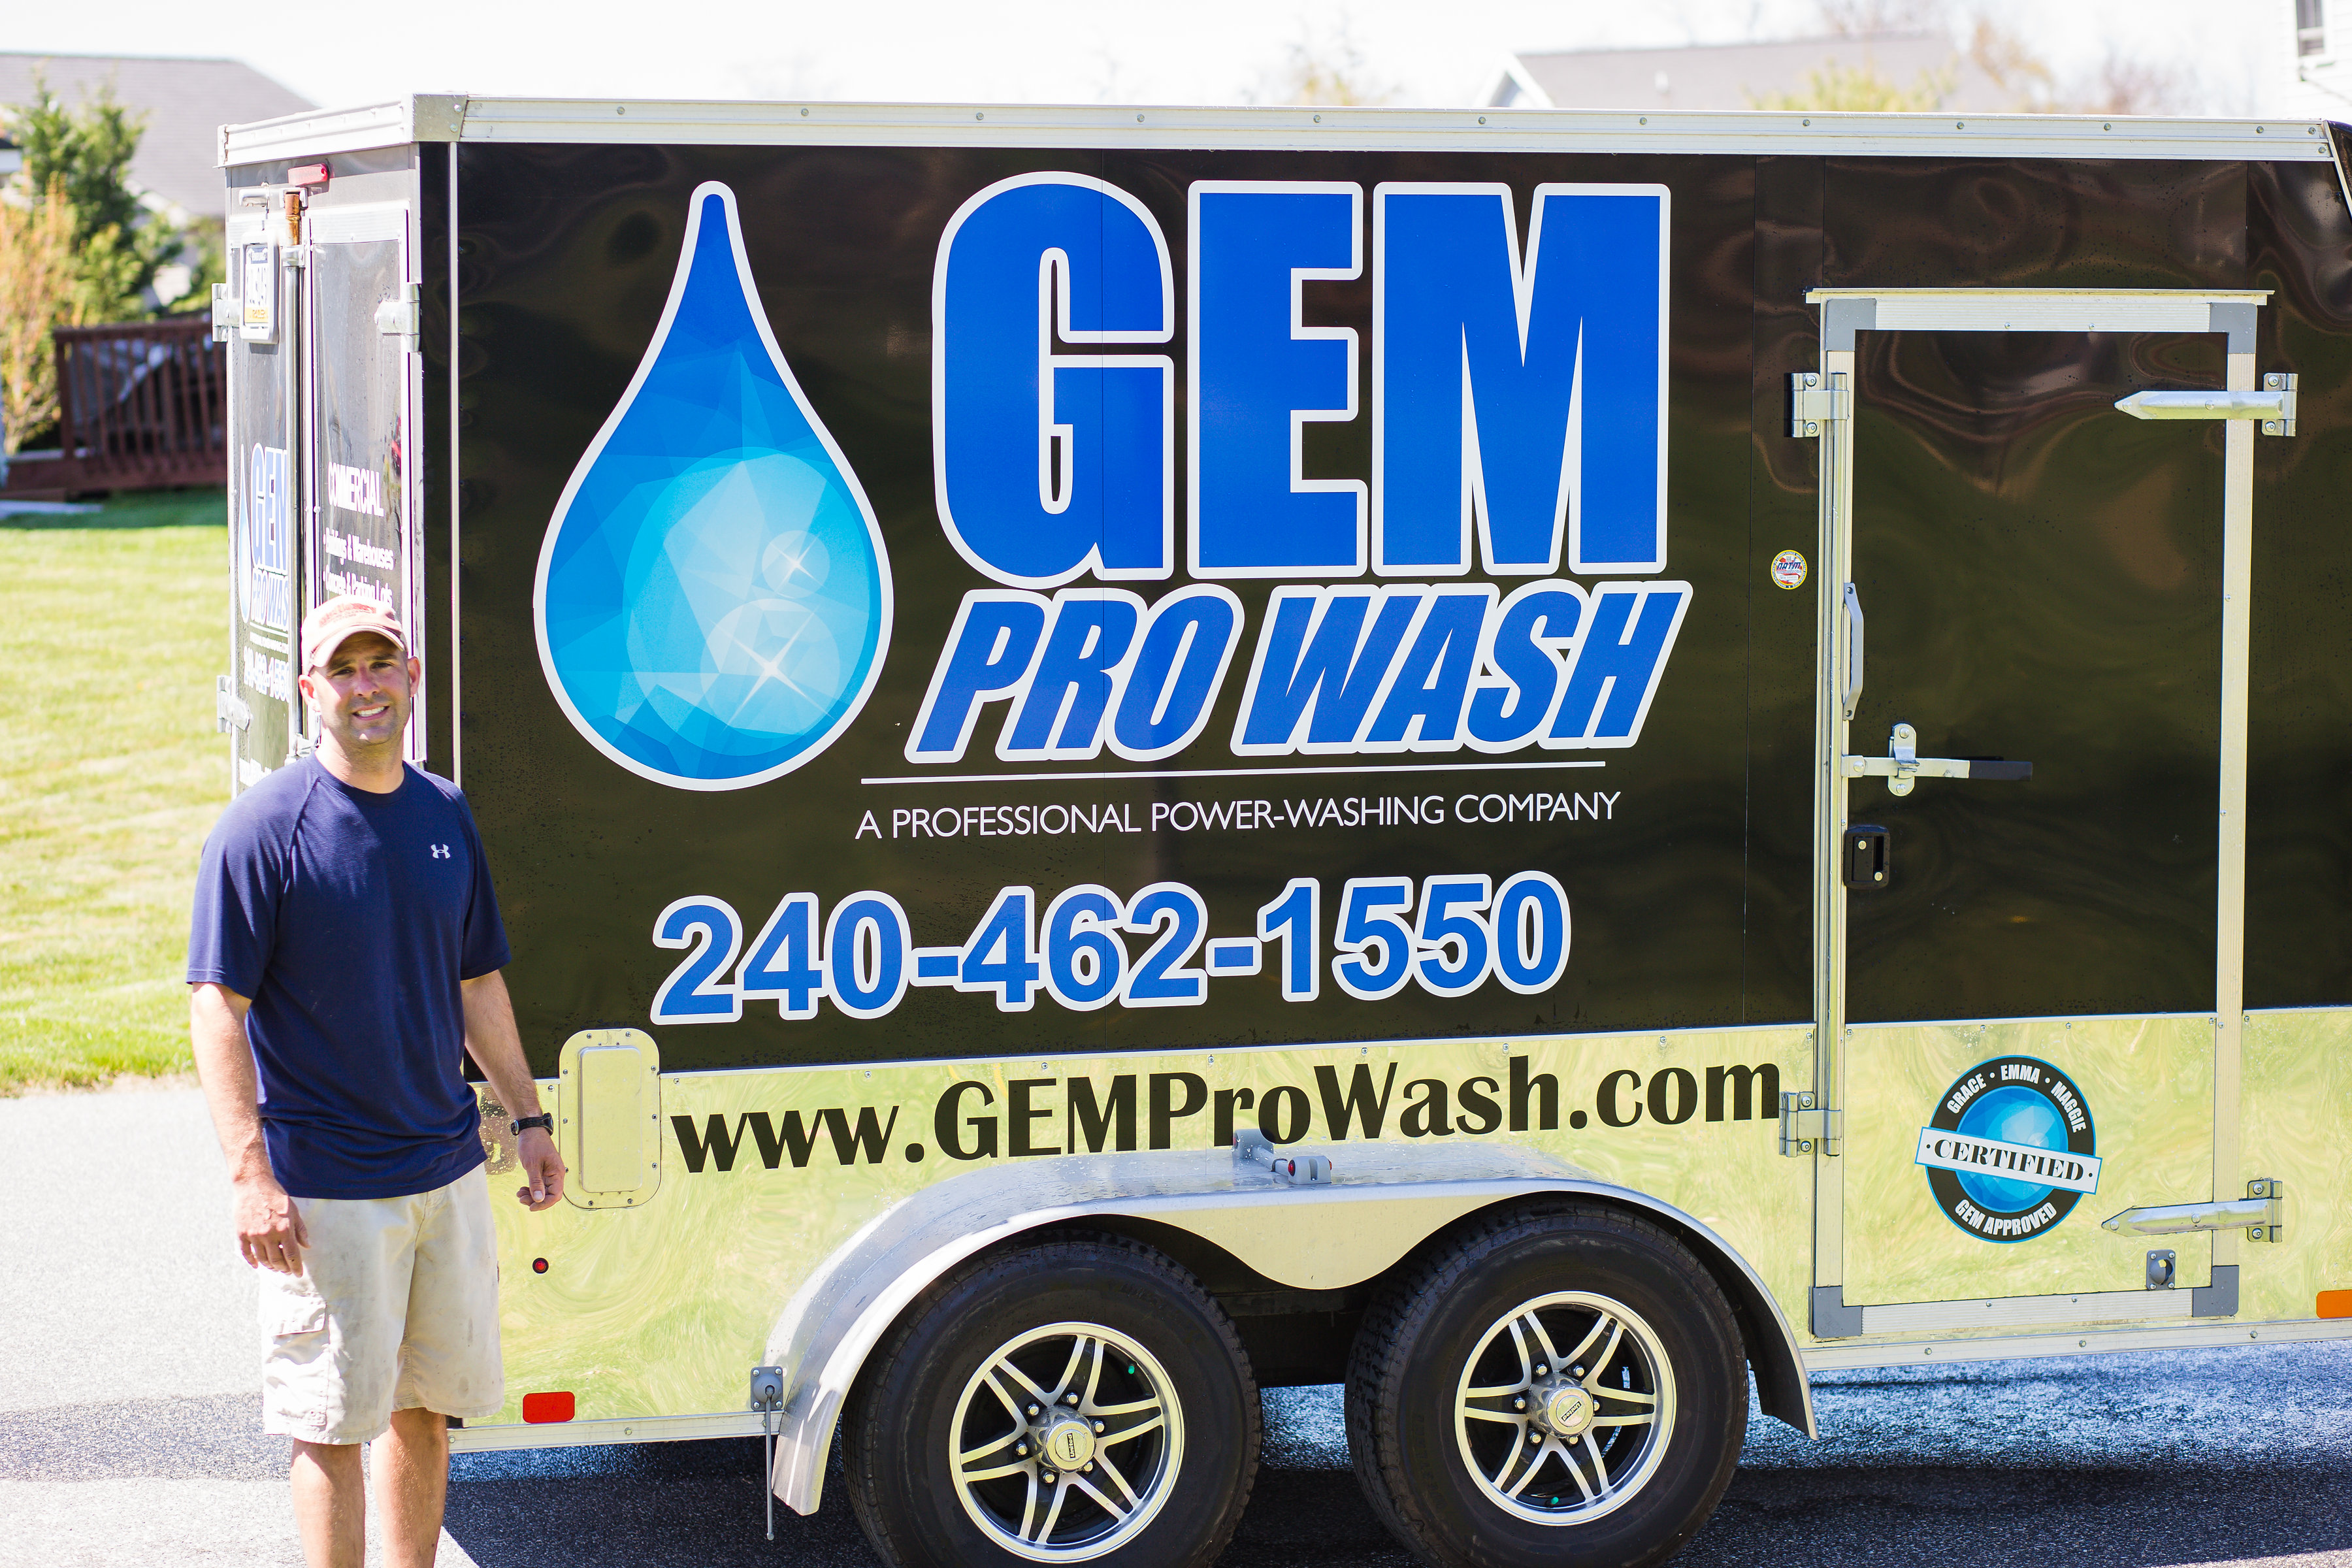 Gem Pro Wash | Deck Cleaning Service in Greencastle PA